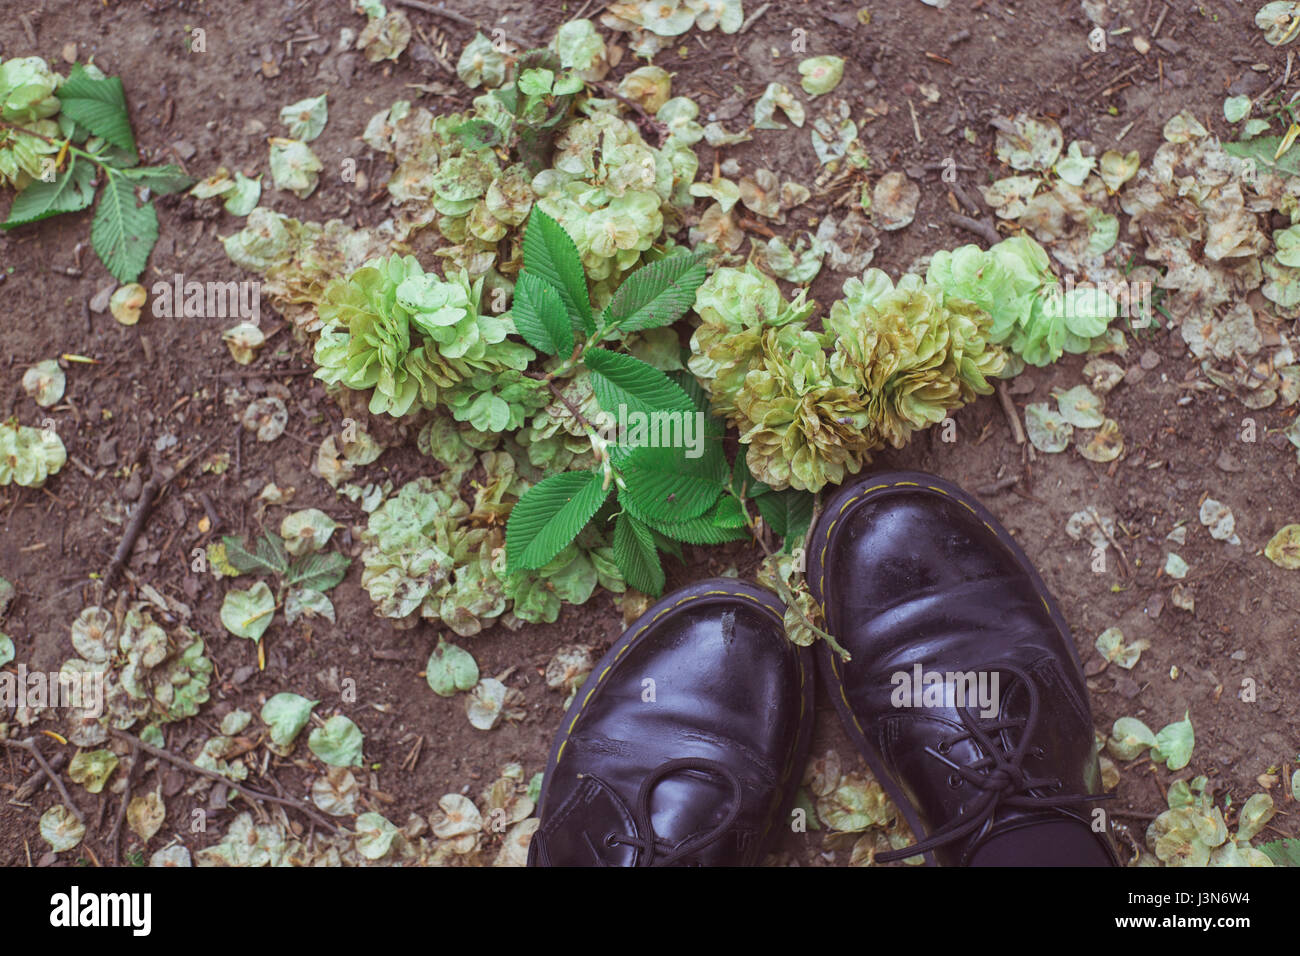 Dr. Martens shoes on top of assorted foliage on ground of Hampstead Heath, North London. - Stock Image